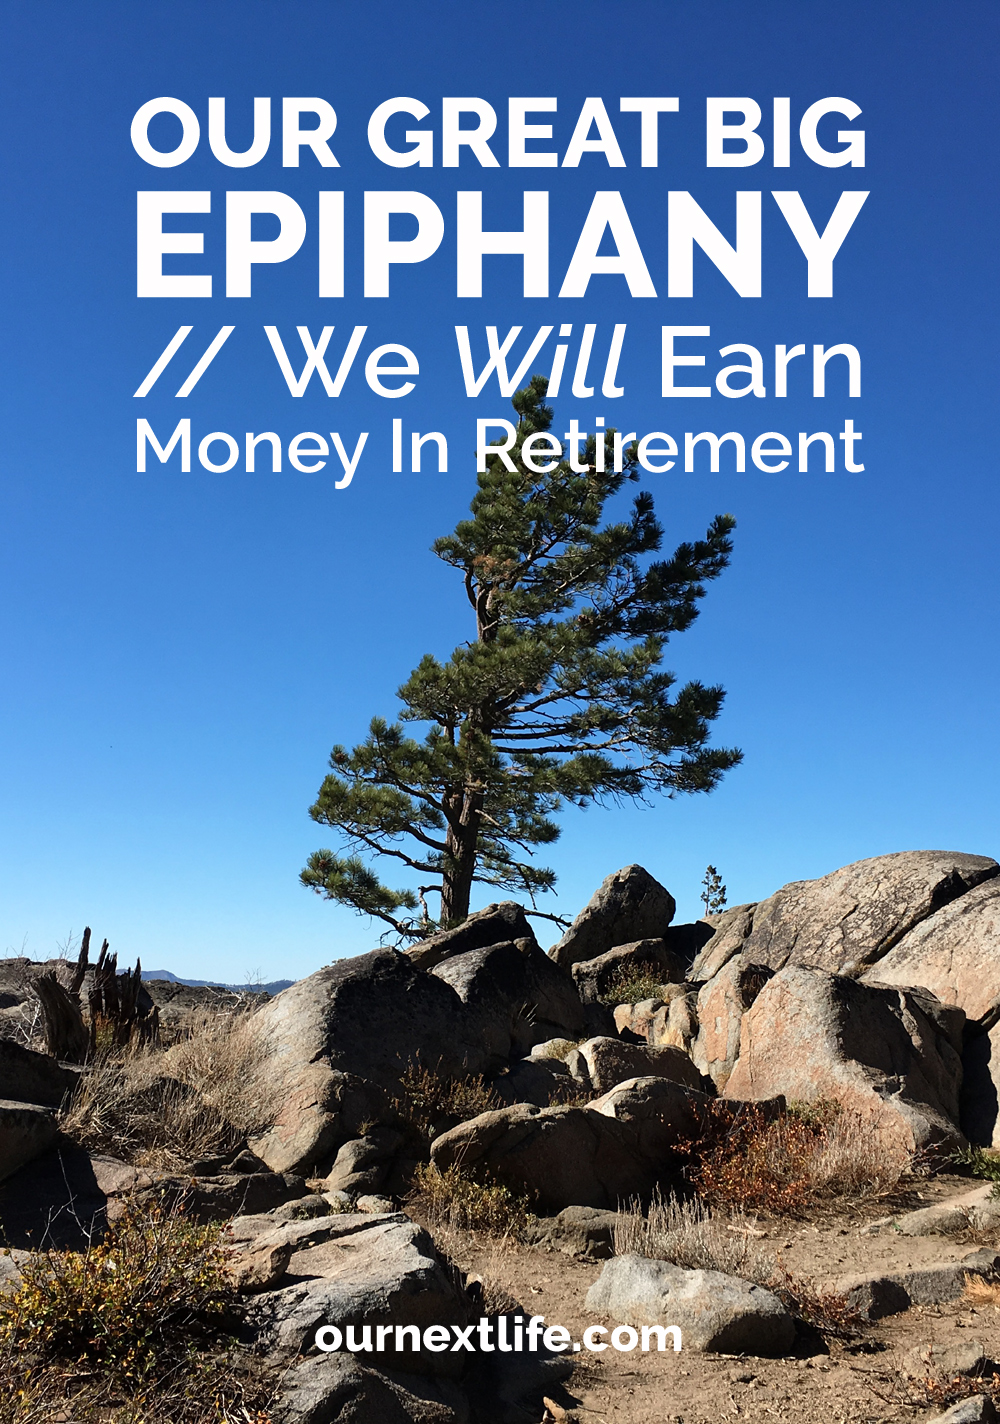 OurNextLife.com // Our Big Epiphany: We Will Earn Money In Retirement // Earning Money in Retirement, Planning to Supplement Savings with Income in Retirement